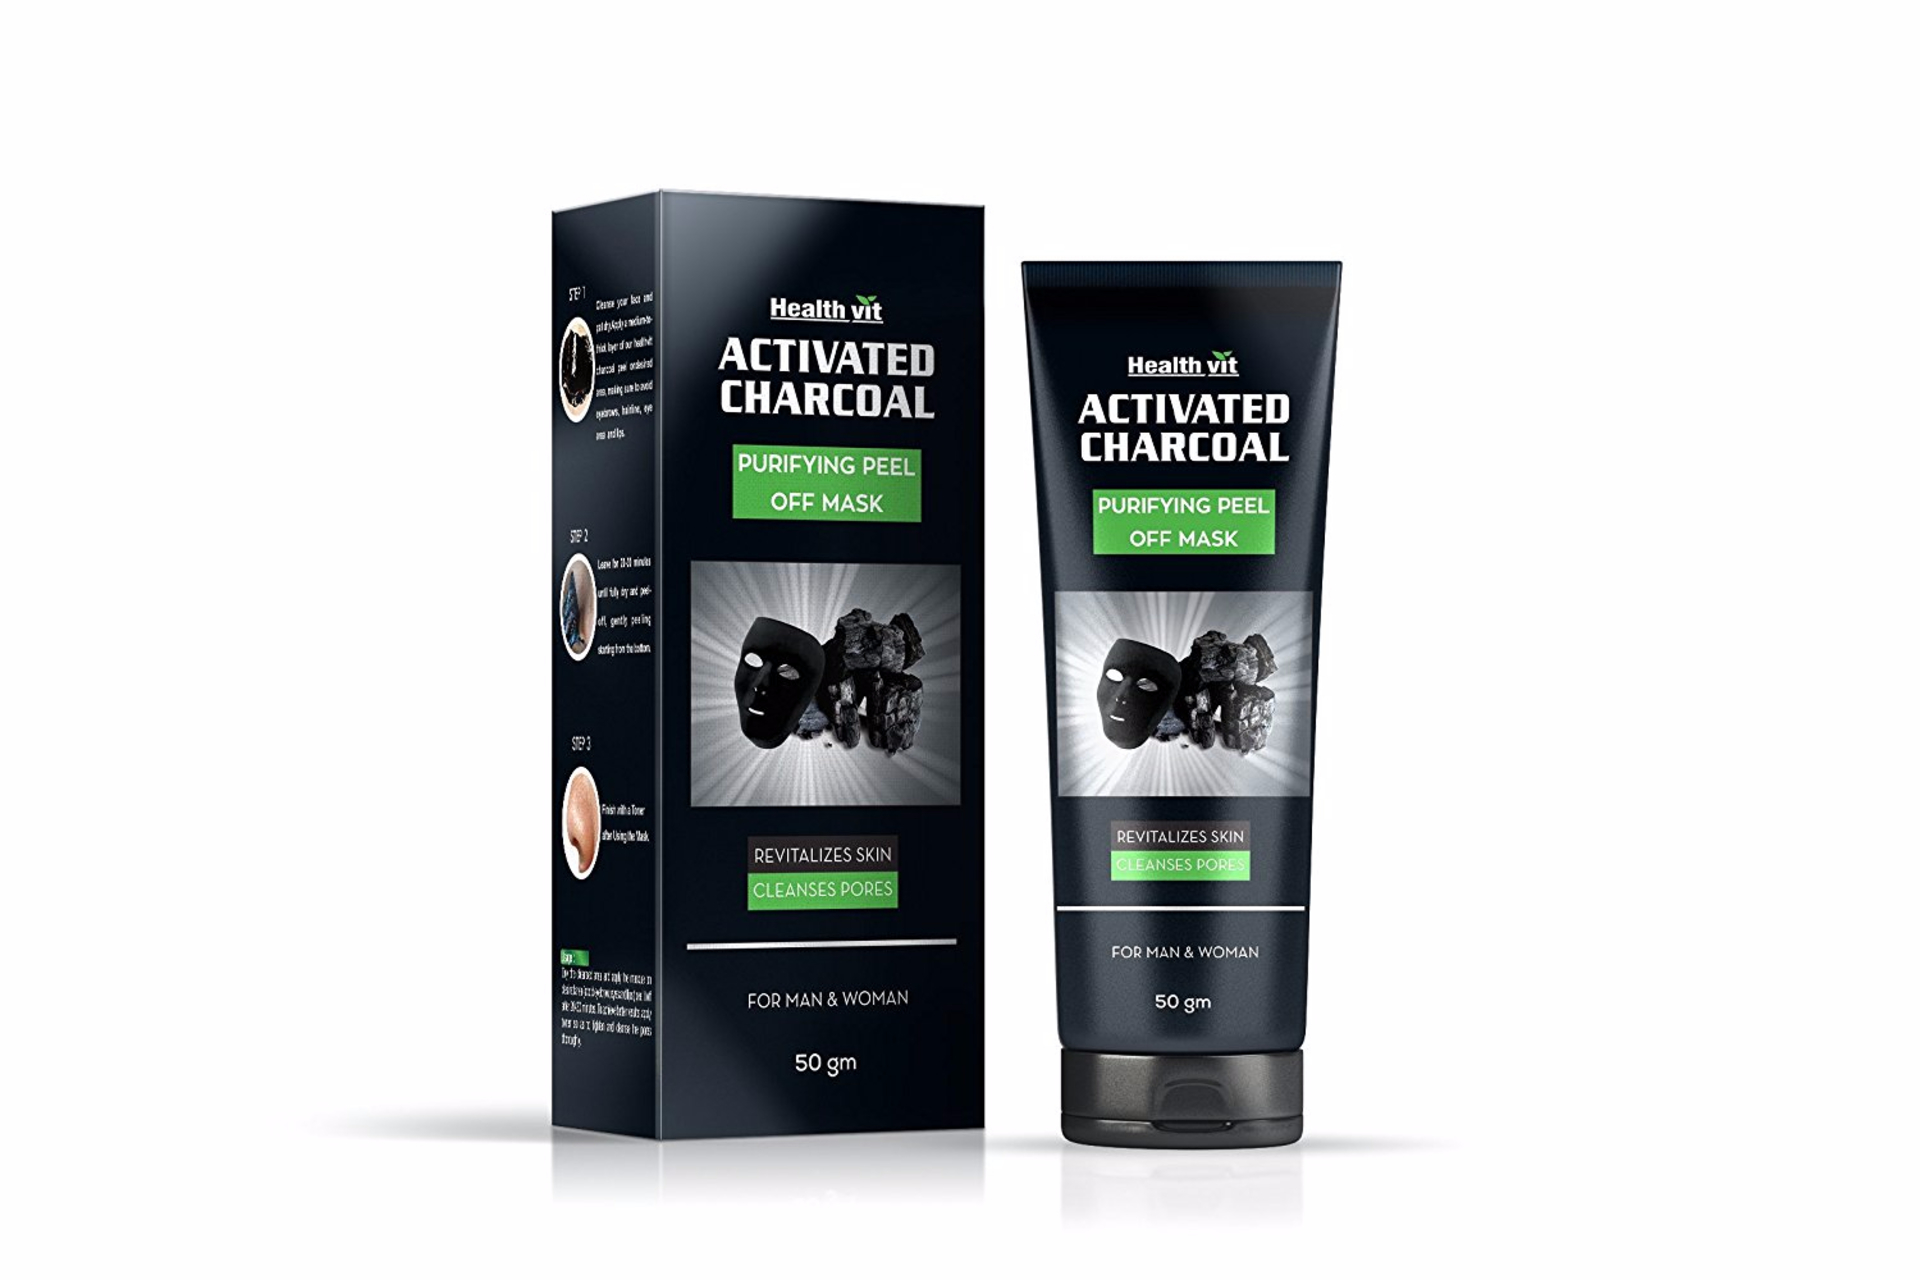 Health vit Activated Charcoal - Products Review image